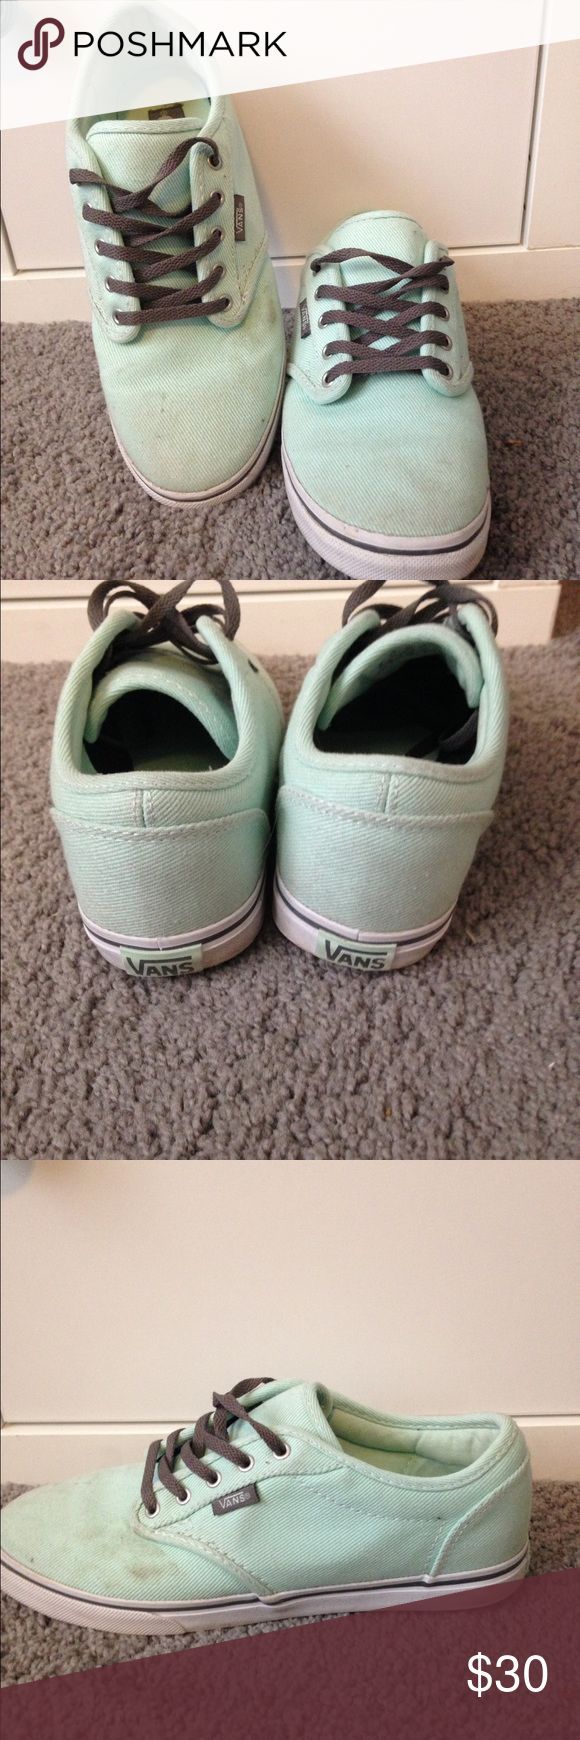 Mint Green Vans Super cute mint green vans. Lightly worn, some dirt on the toe, but they clean up really well with a damp cloth and could probably be thrown in the washing machine and come out good as new! Vans Shoes